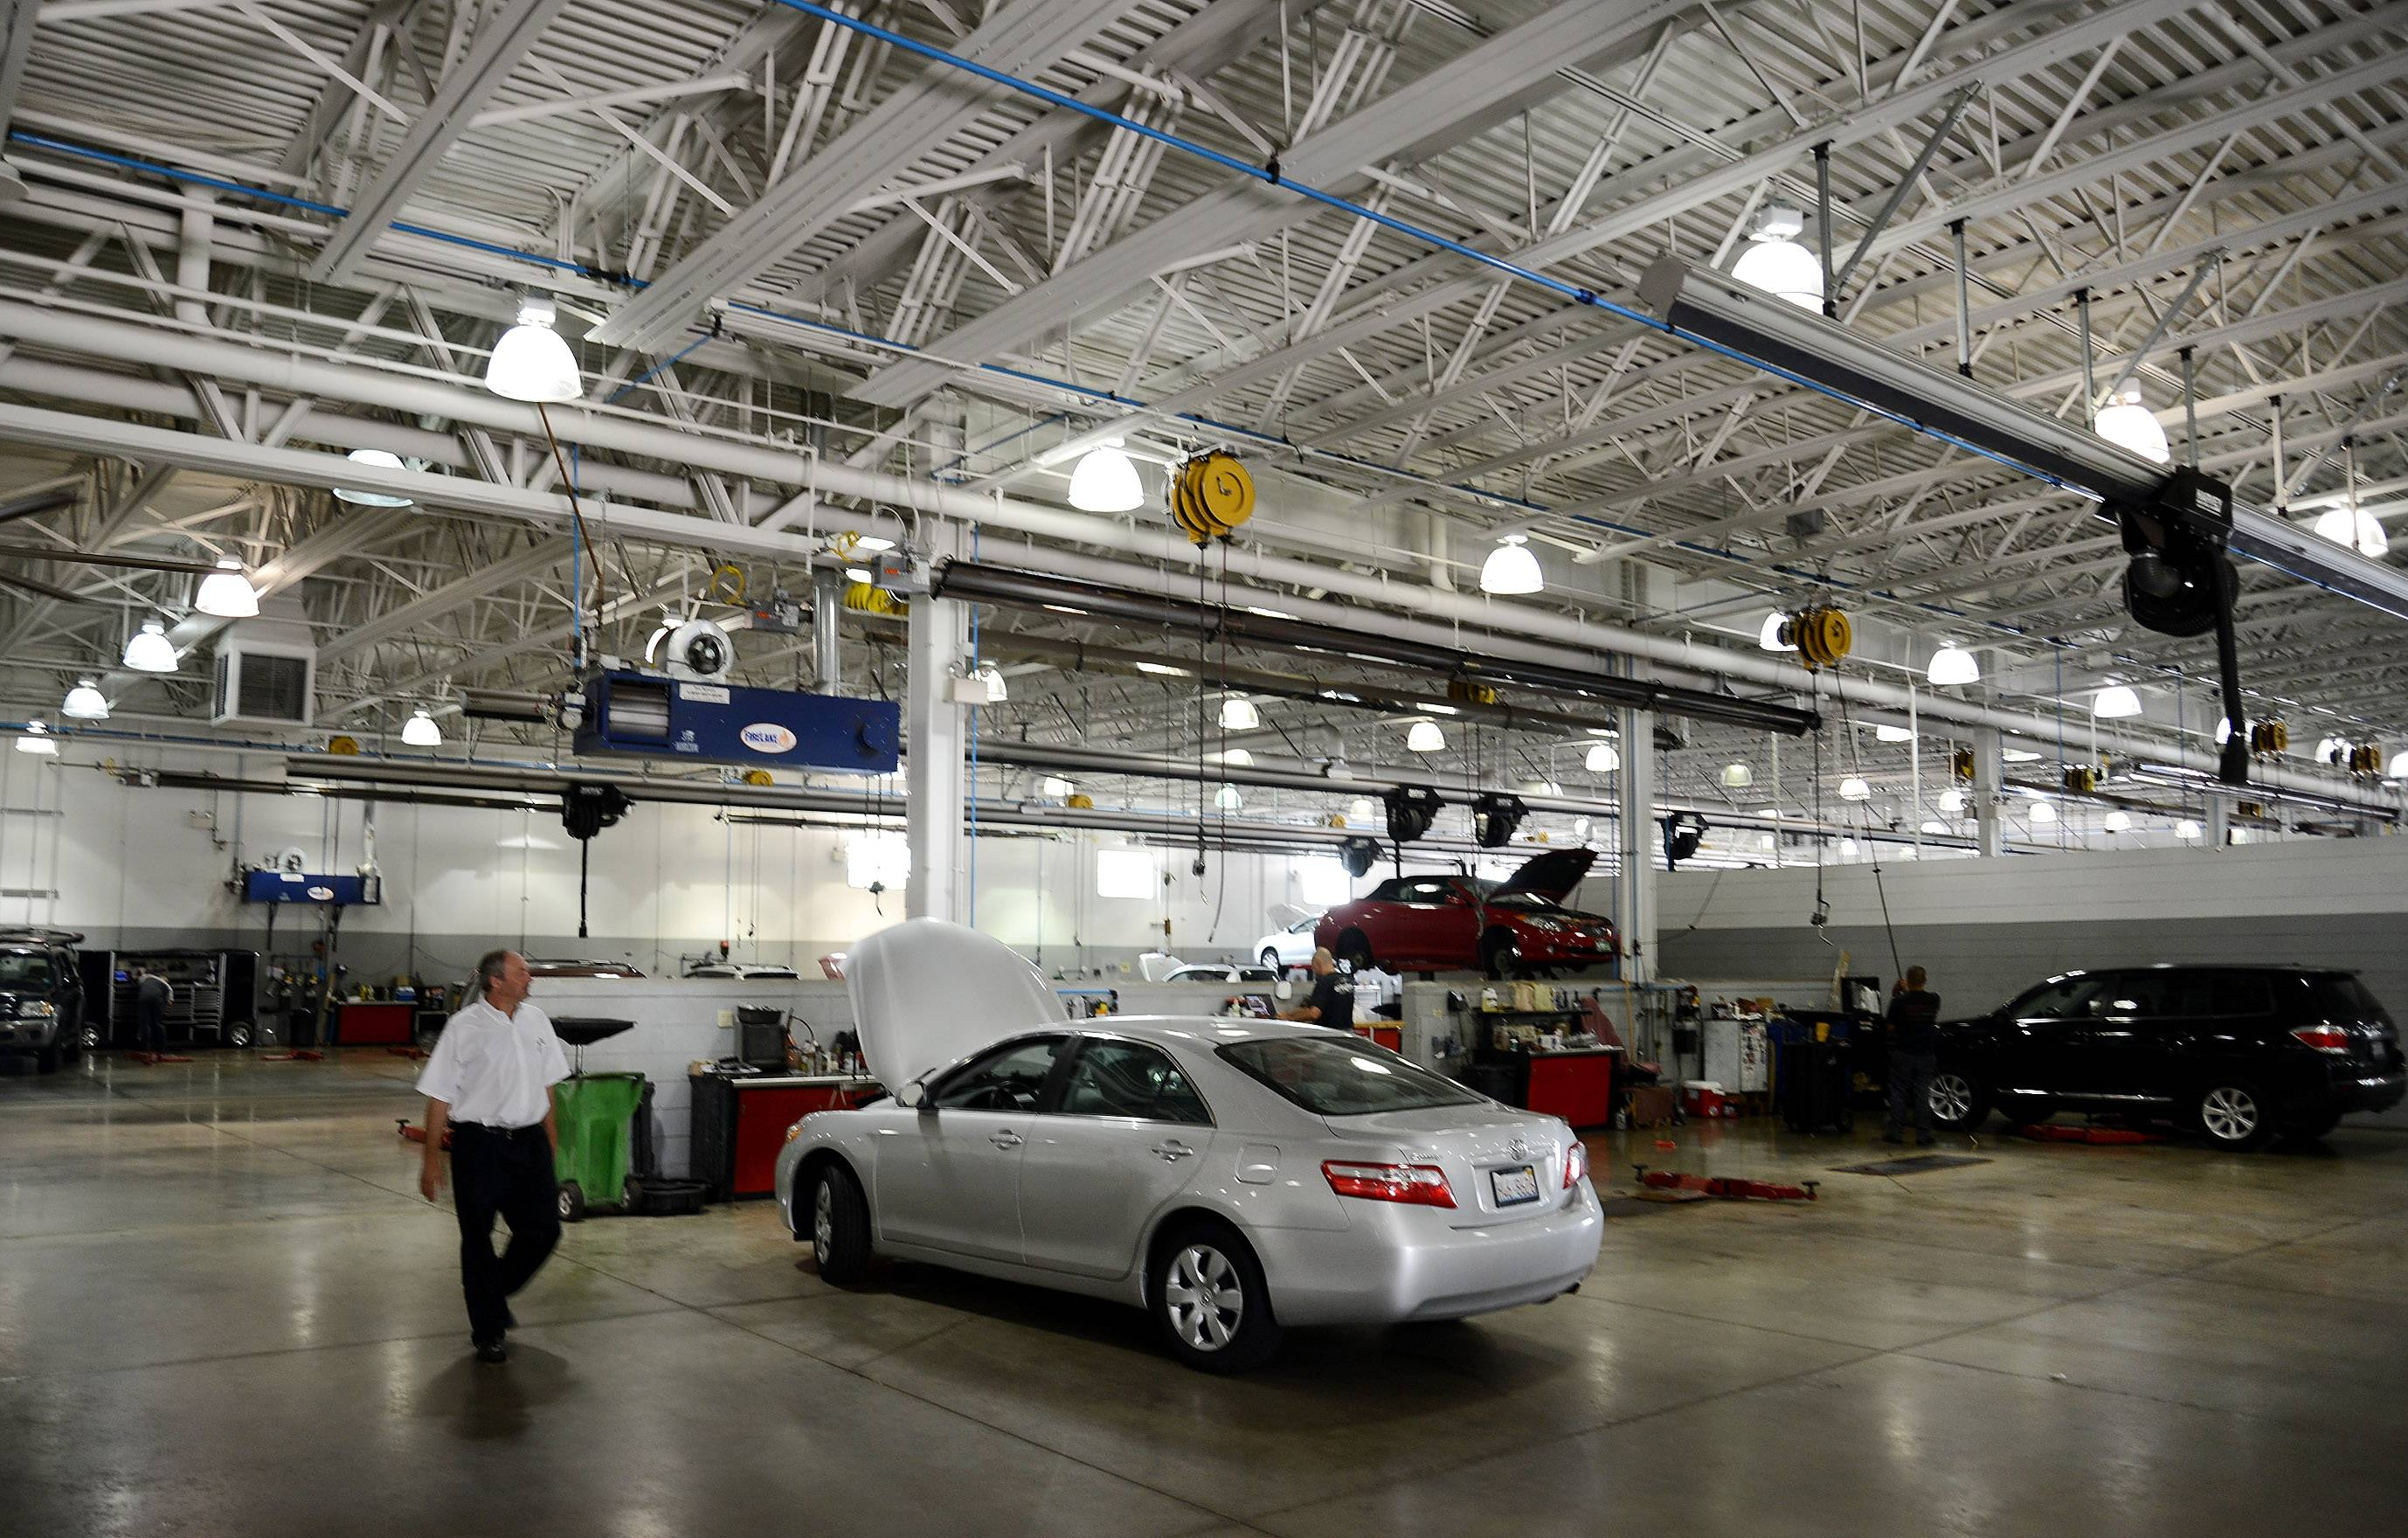 Arlington Toyota/Scion operates a 56-bay service, parts and collision center. Fewer than one-third of new car dealerships offer body shop services.